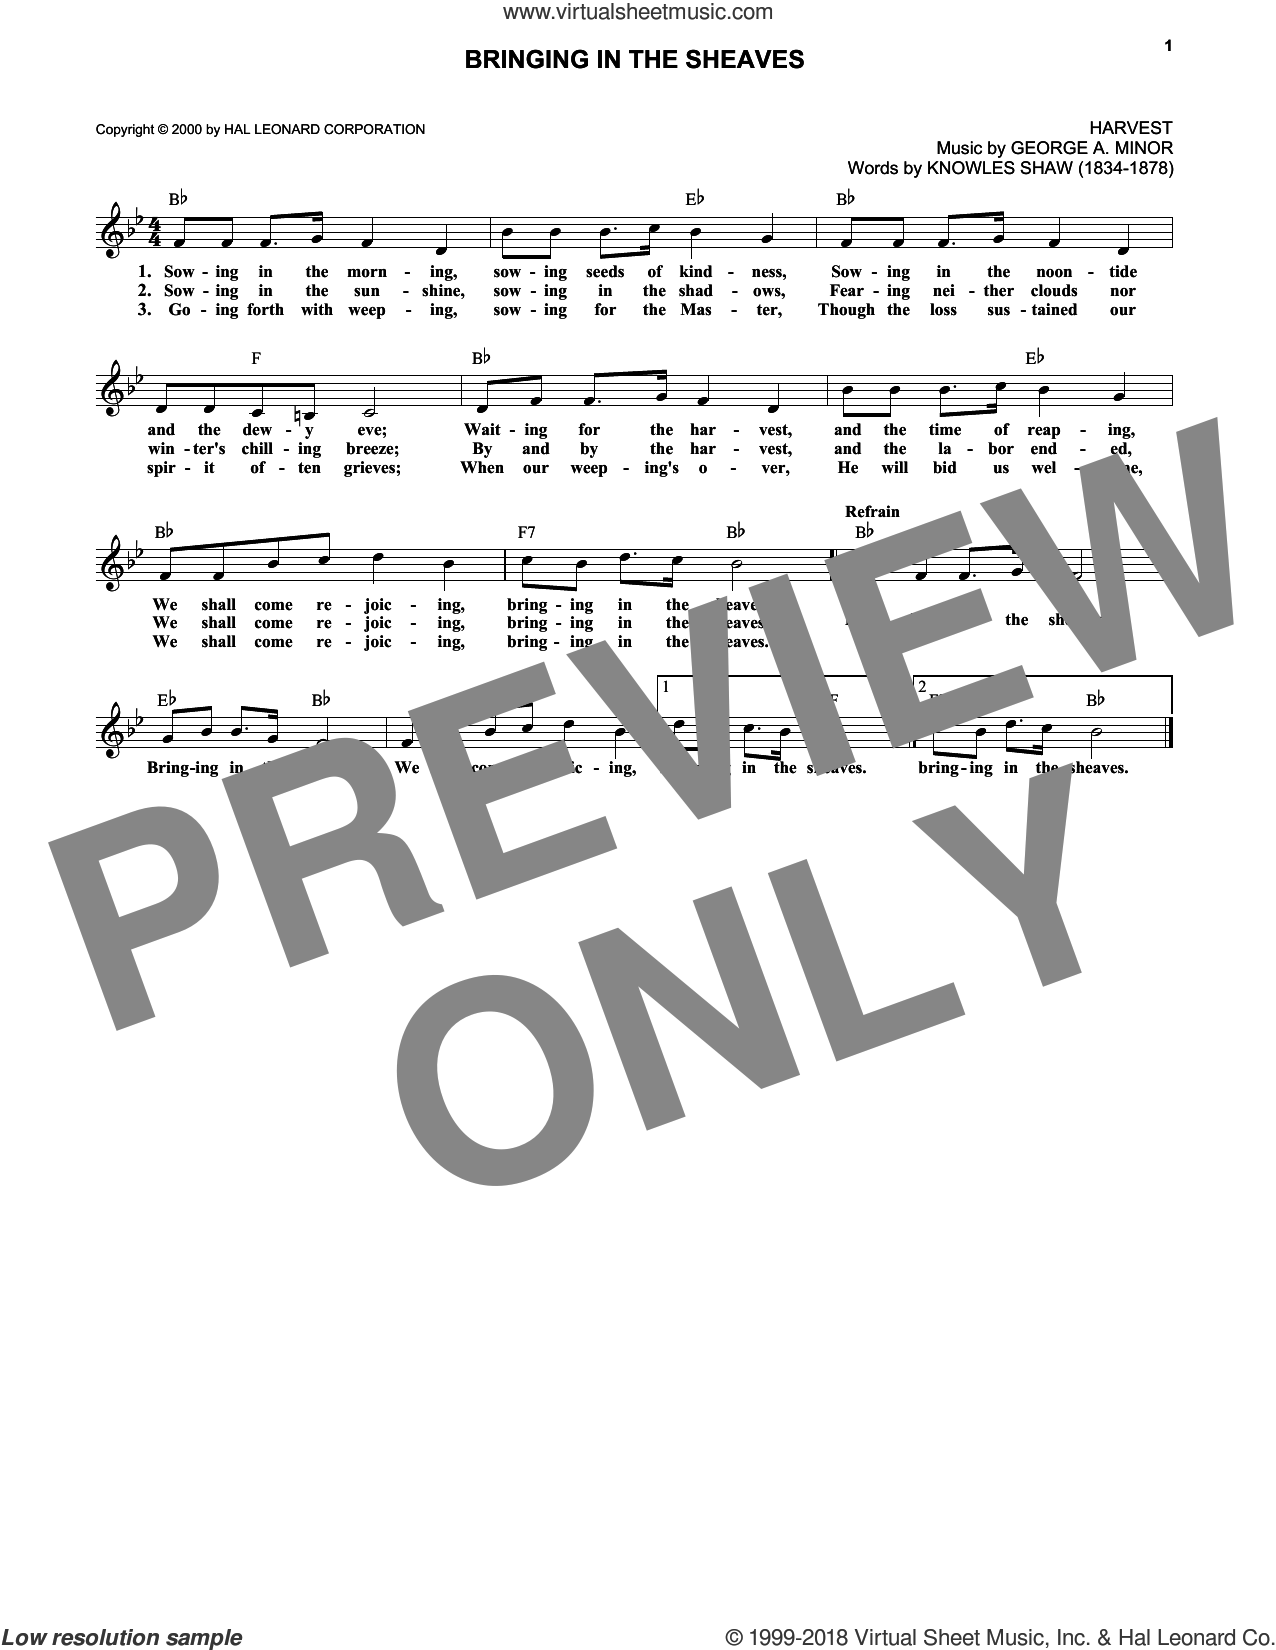 Bringing In The Sheaves sheet music for voice and other instruments (fake book) by Knowles Shaw. Score Image Preview.